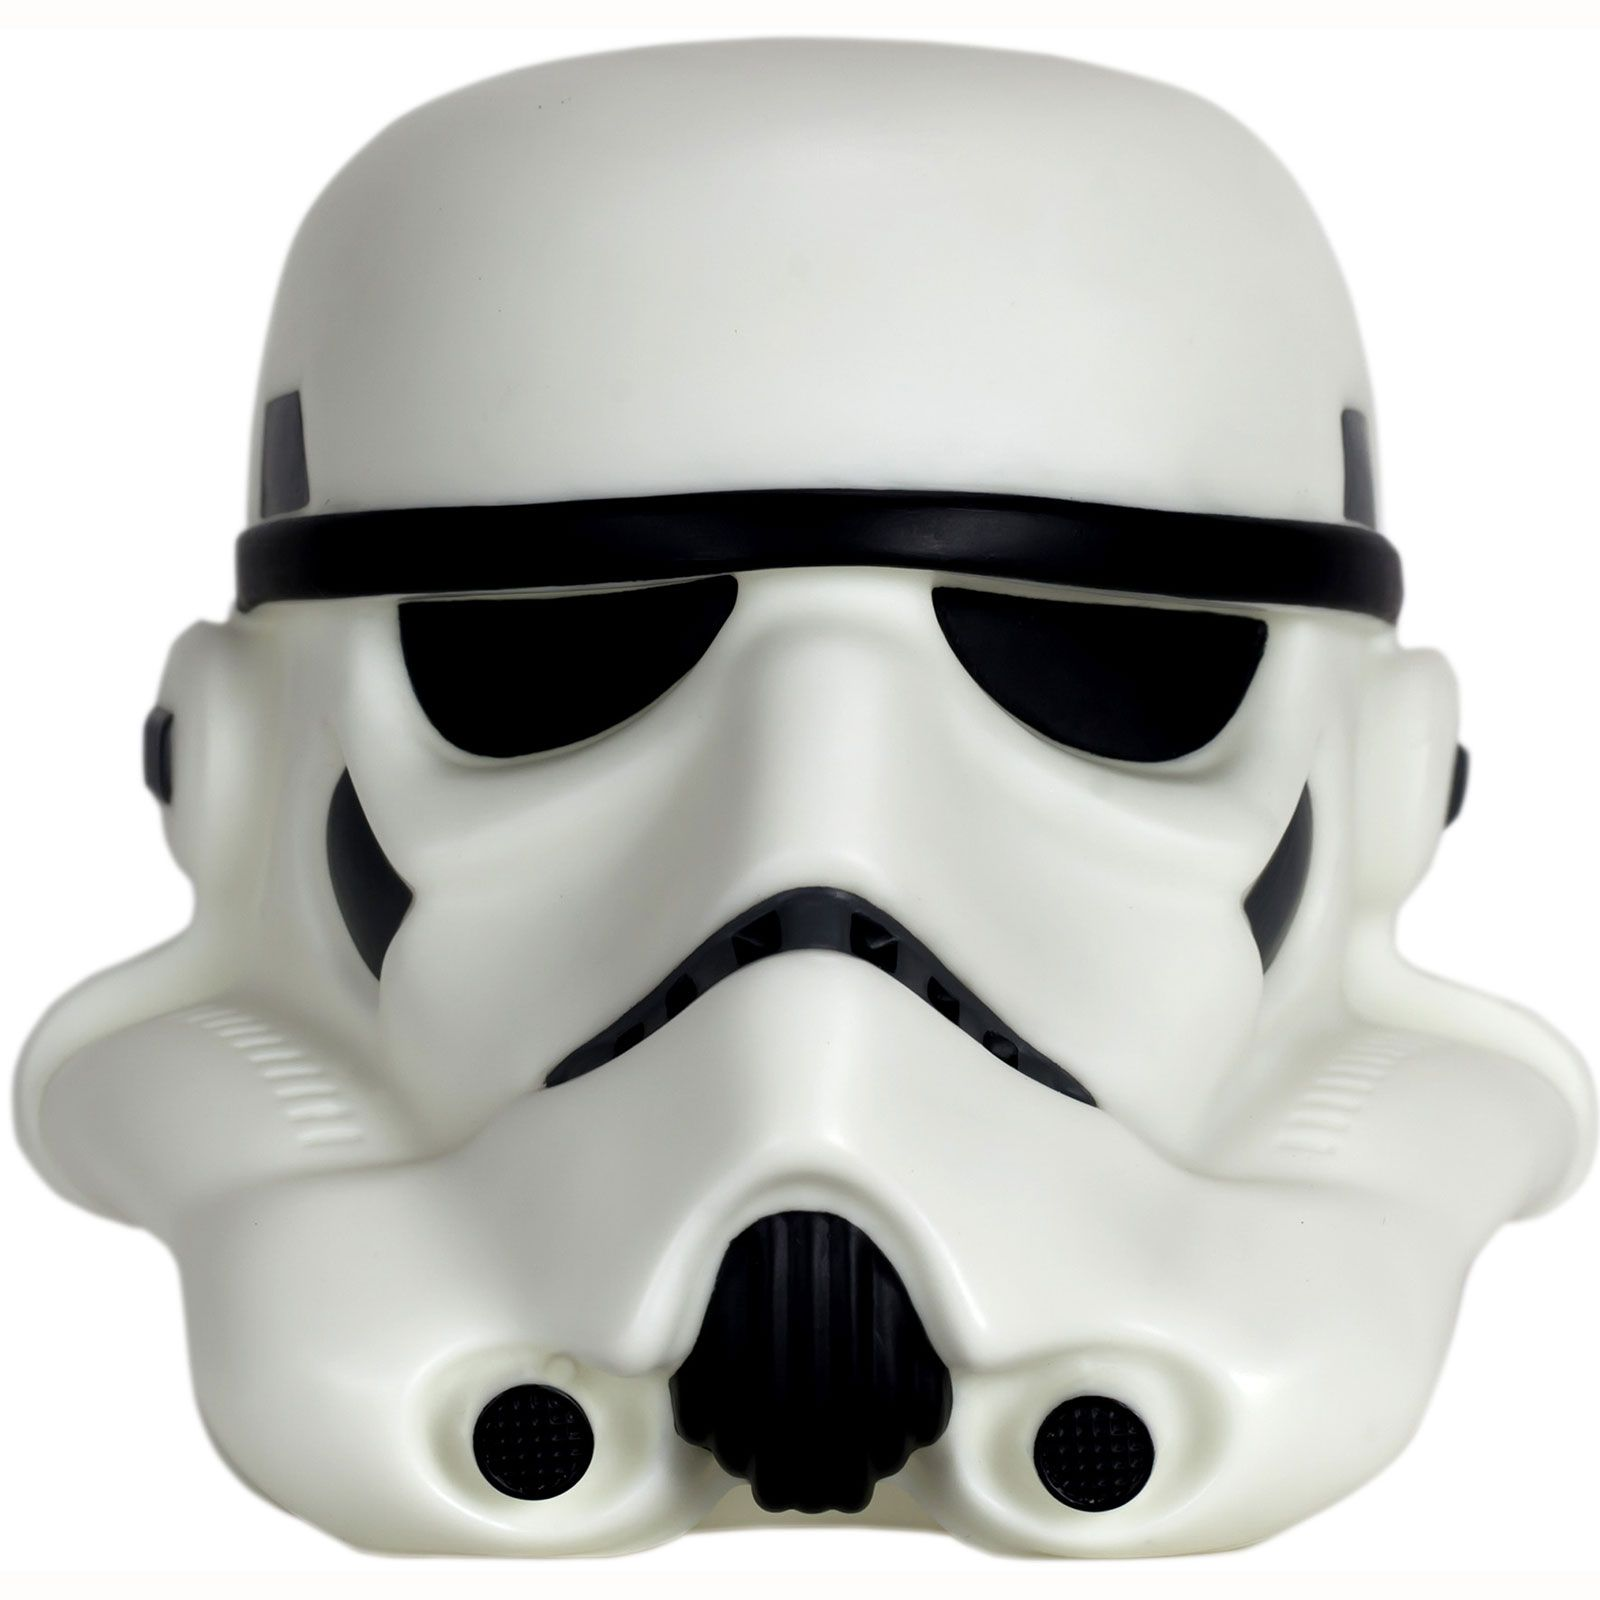 star wars stormtrooper illumi mate farb ver ndernd nacht lampe ebay. Black Bedroom Furniture Sets. Home Design Ideas